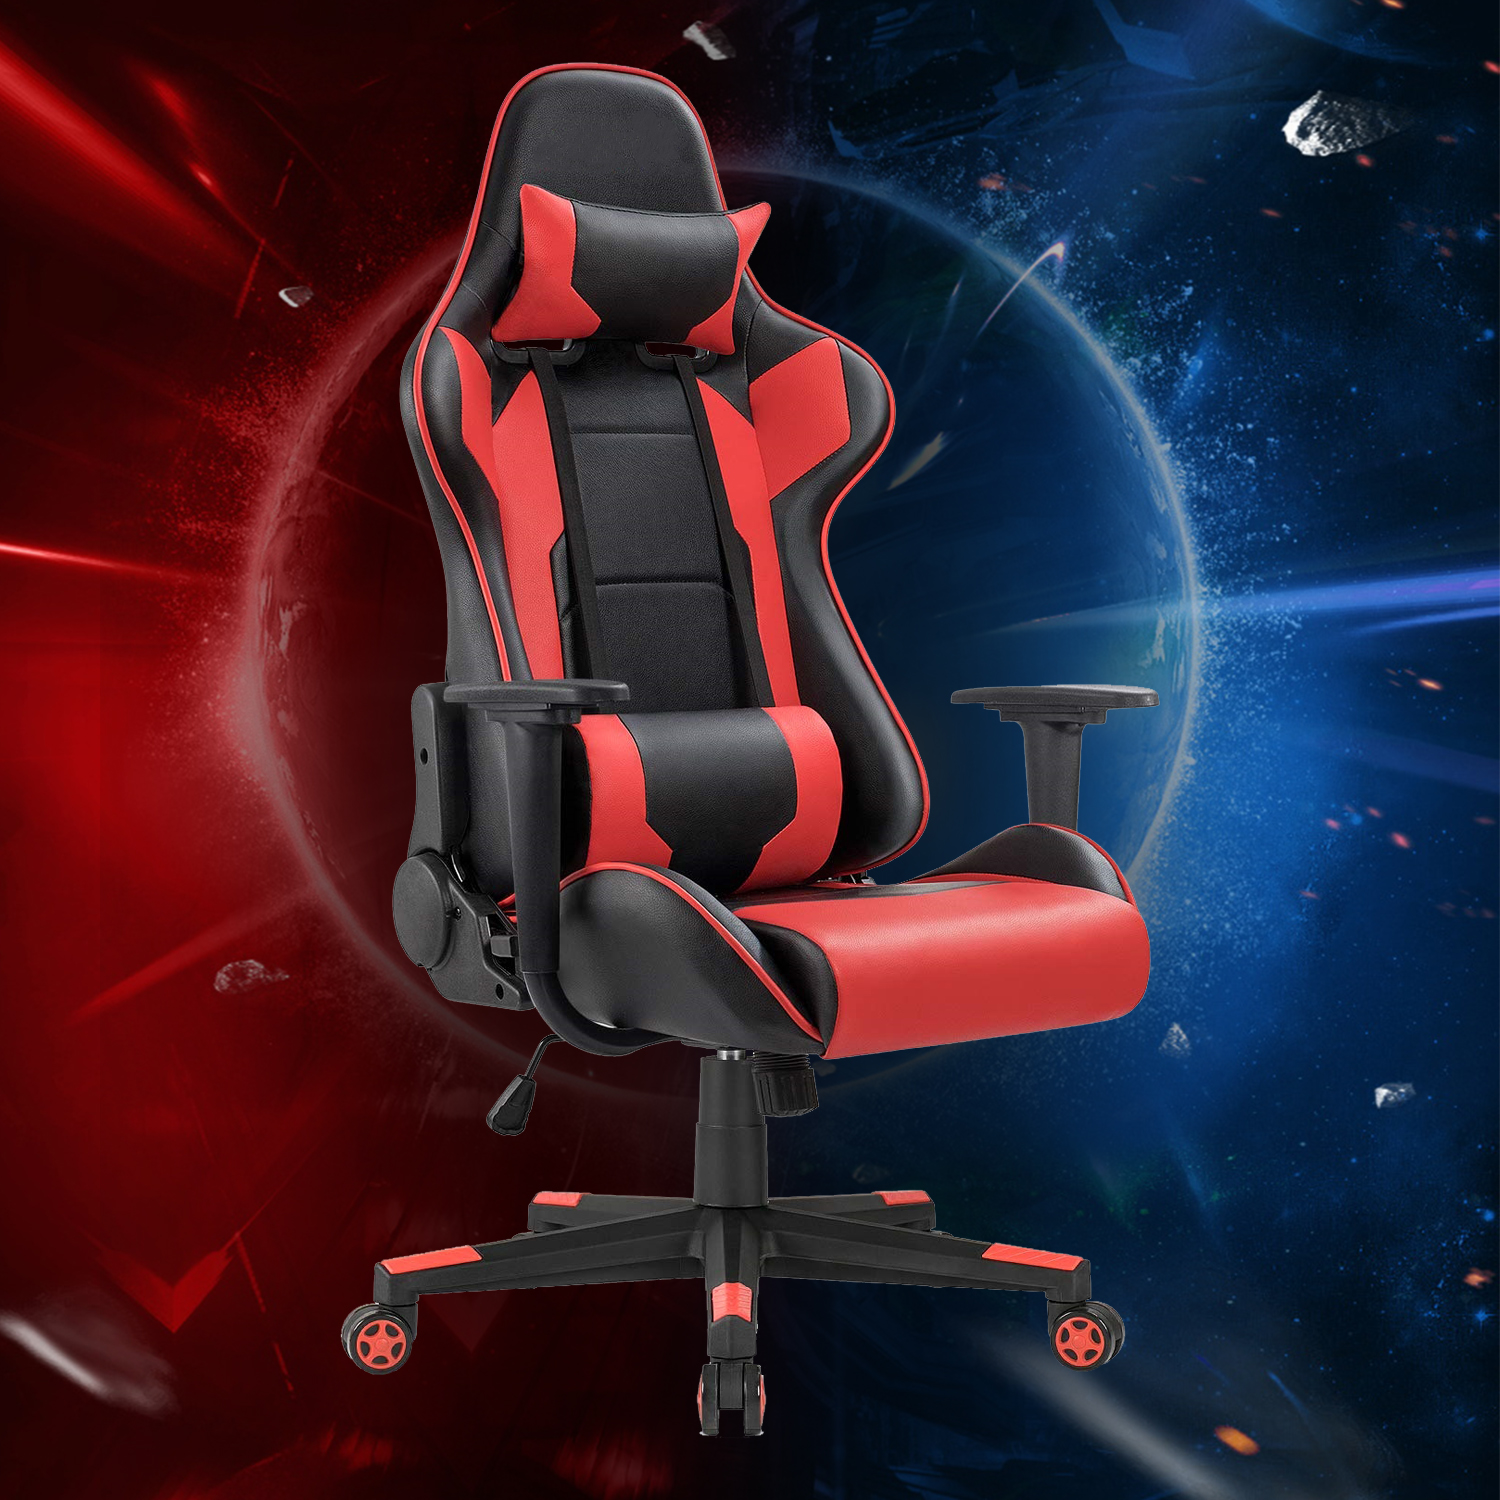 Racing Style Gaming Chair - High back Height Adjustable - $20.35 + $10 shipping